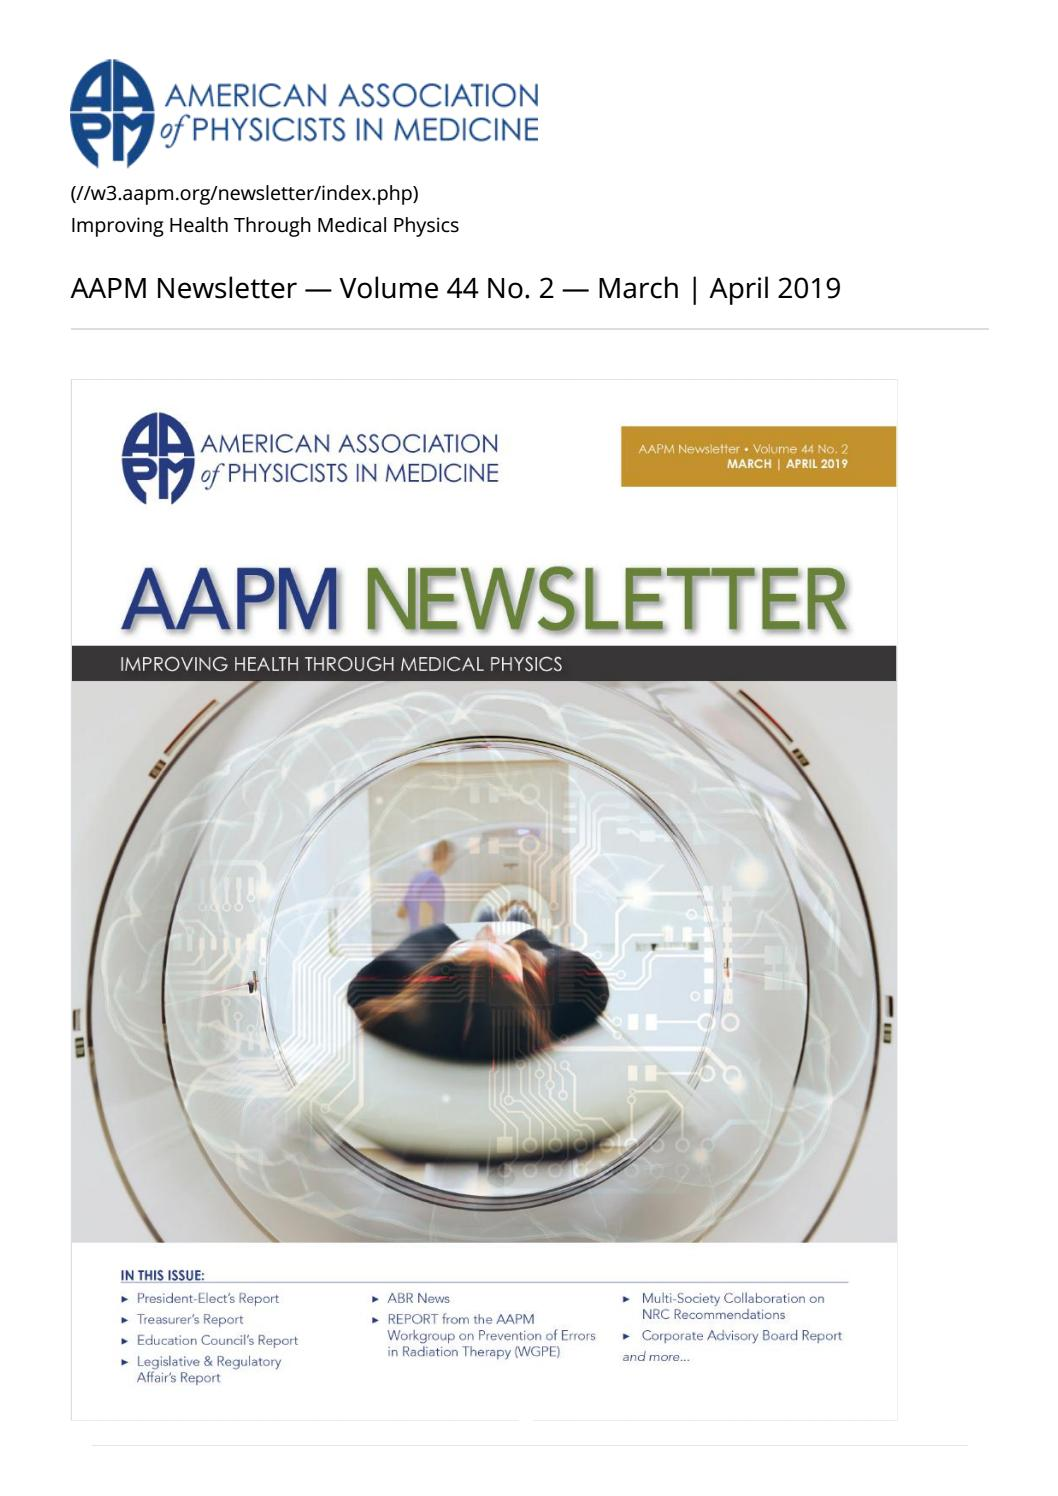 AAPM Newsletter March/April 2019 Vol  44 No  2 by aapmdocs